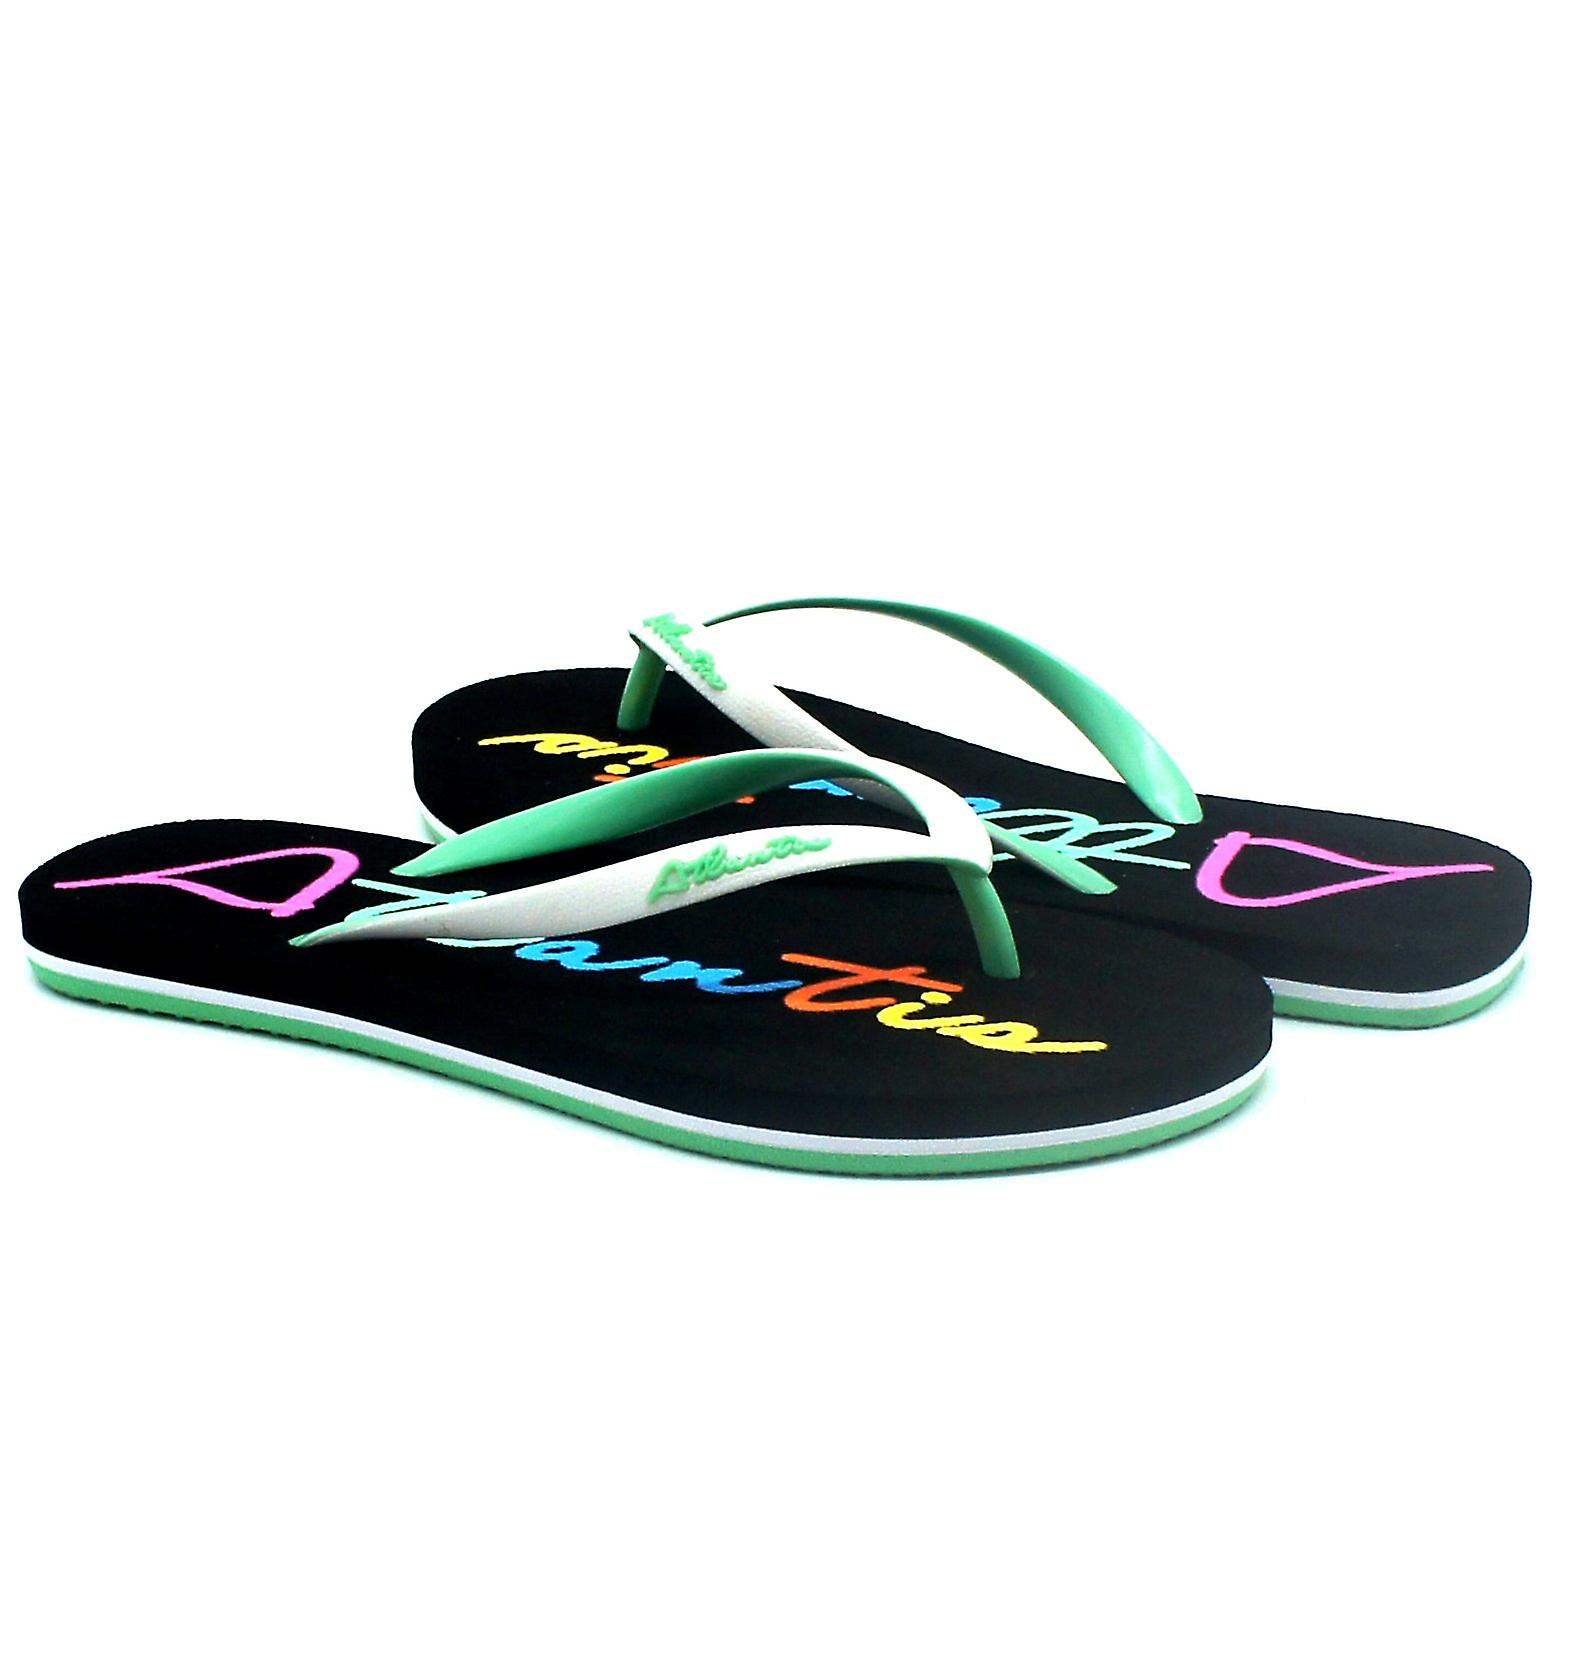 Atlantis Shoes Women Supportive Cushioned Comfortable Sandals Flip Flops Big Logo Black